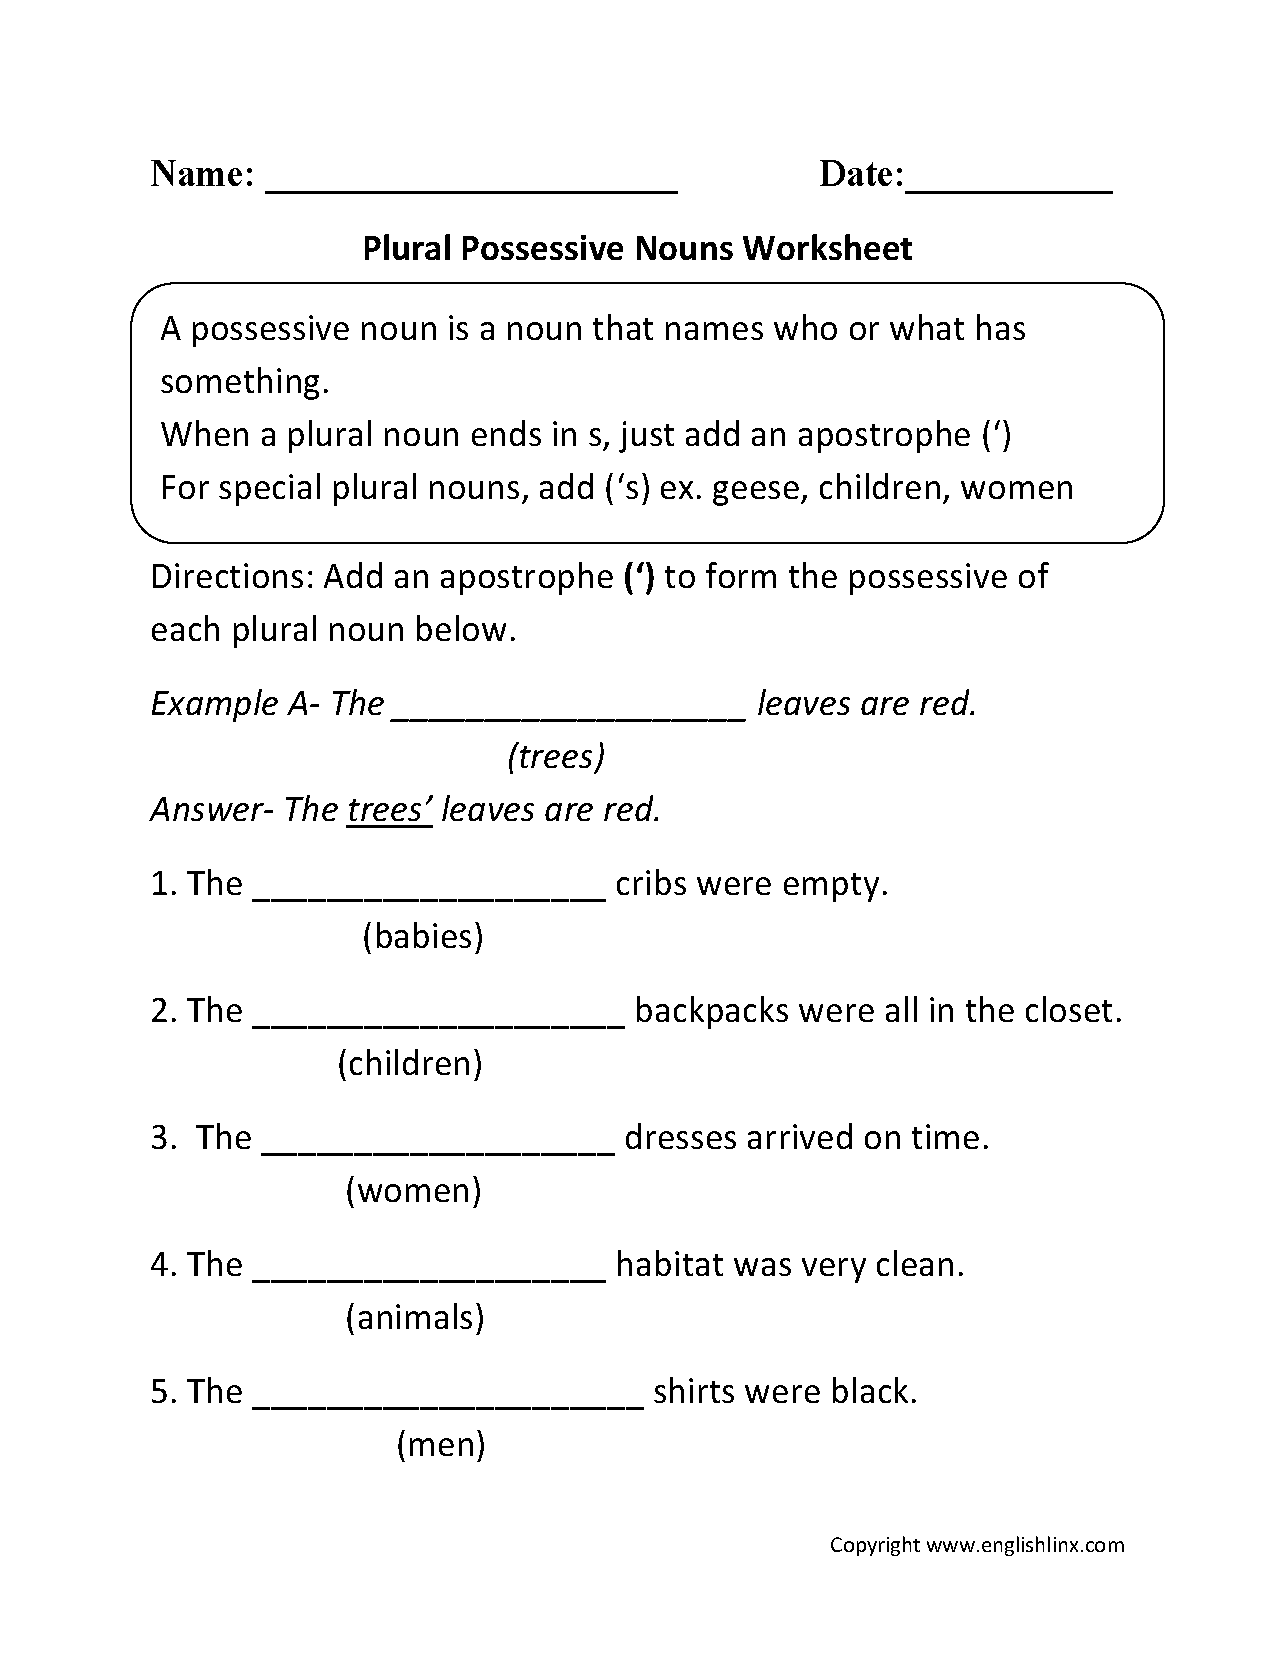 Worksheets Noun Worksheets For 1st Grade plural possessive nouns worksheets more